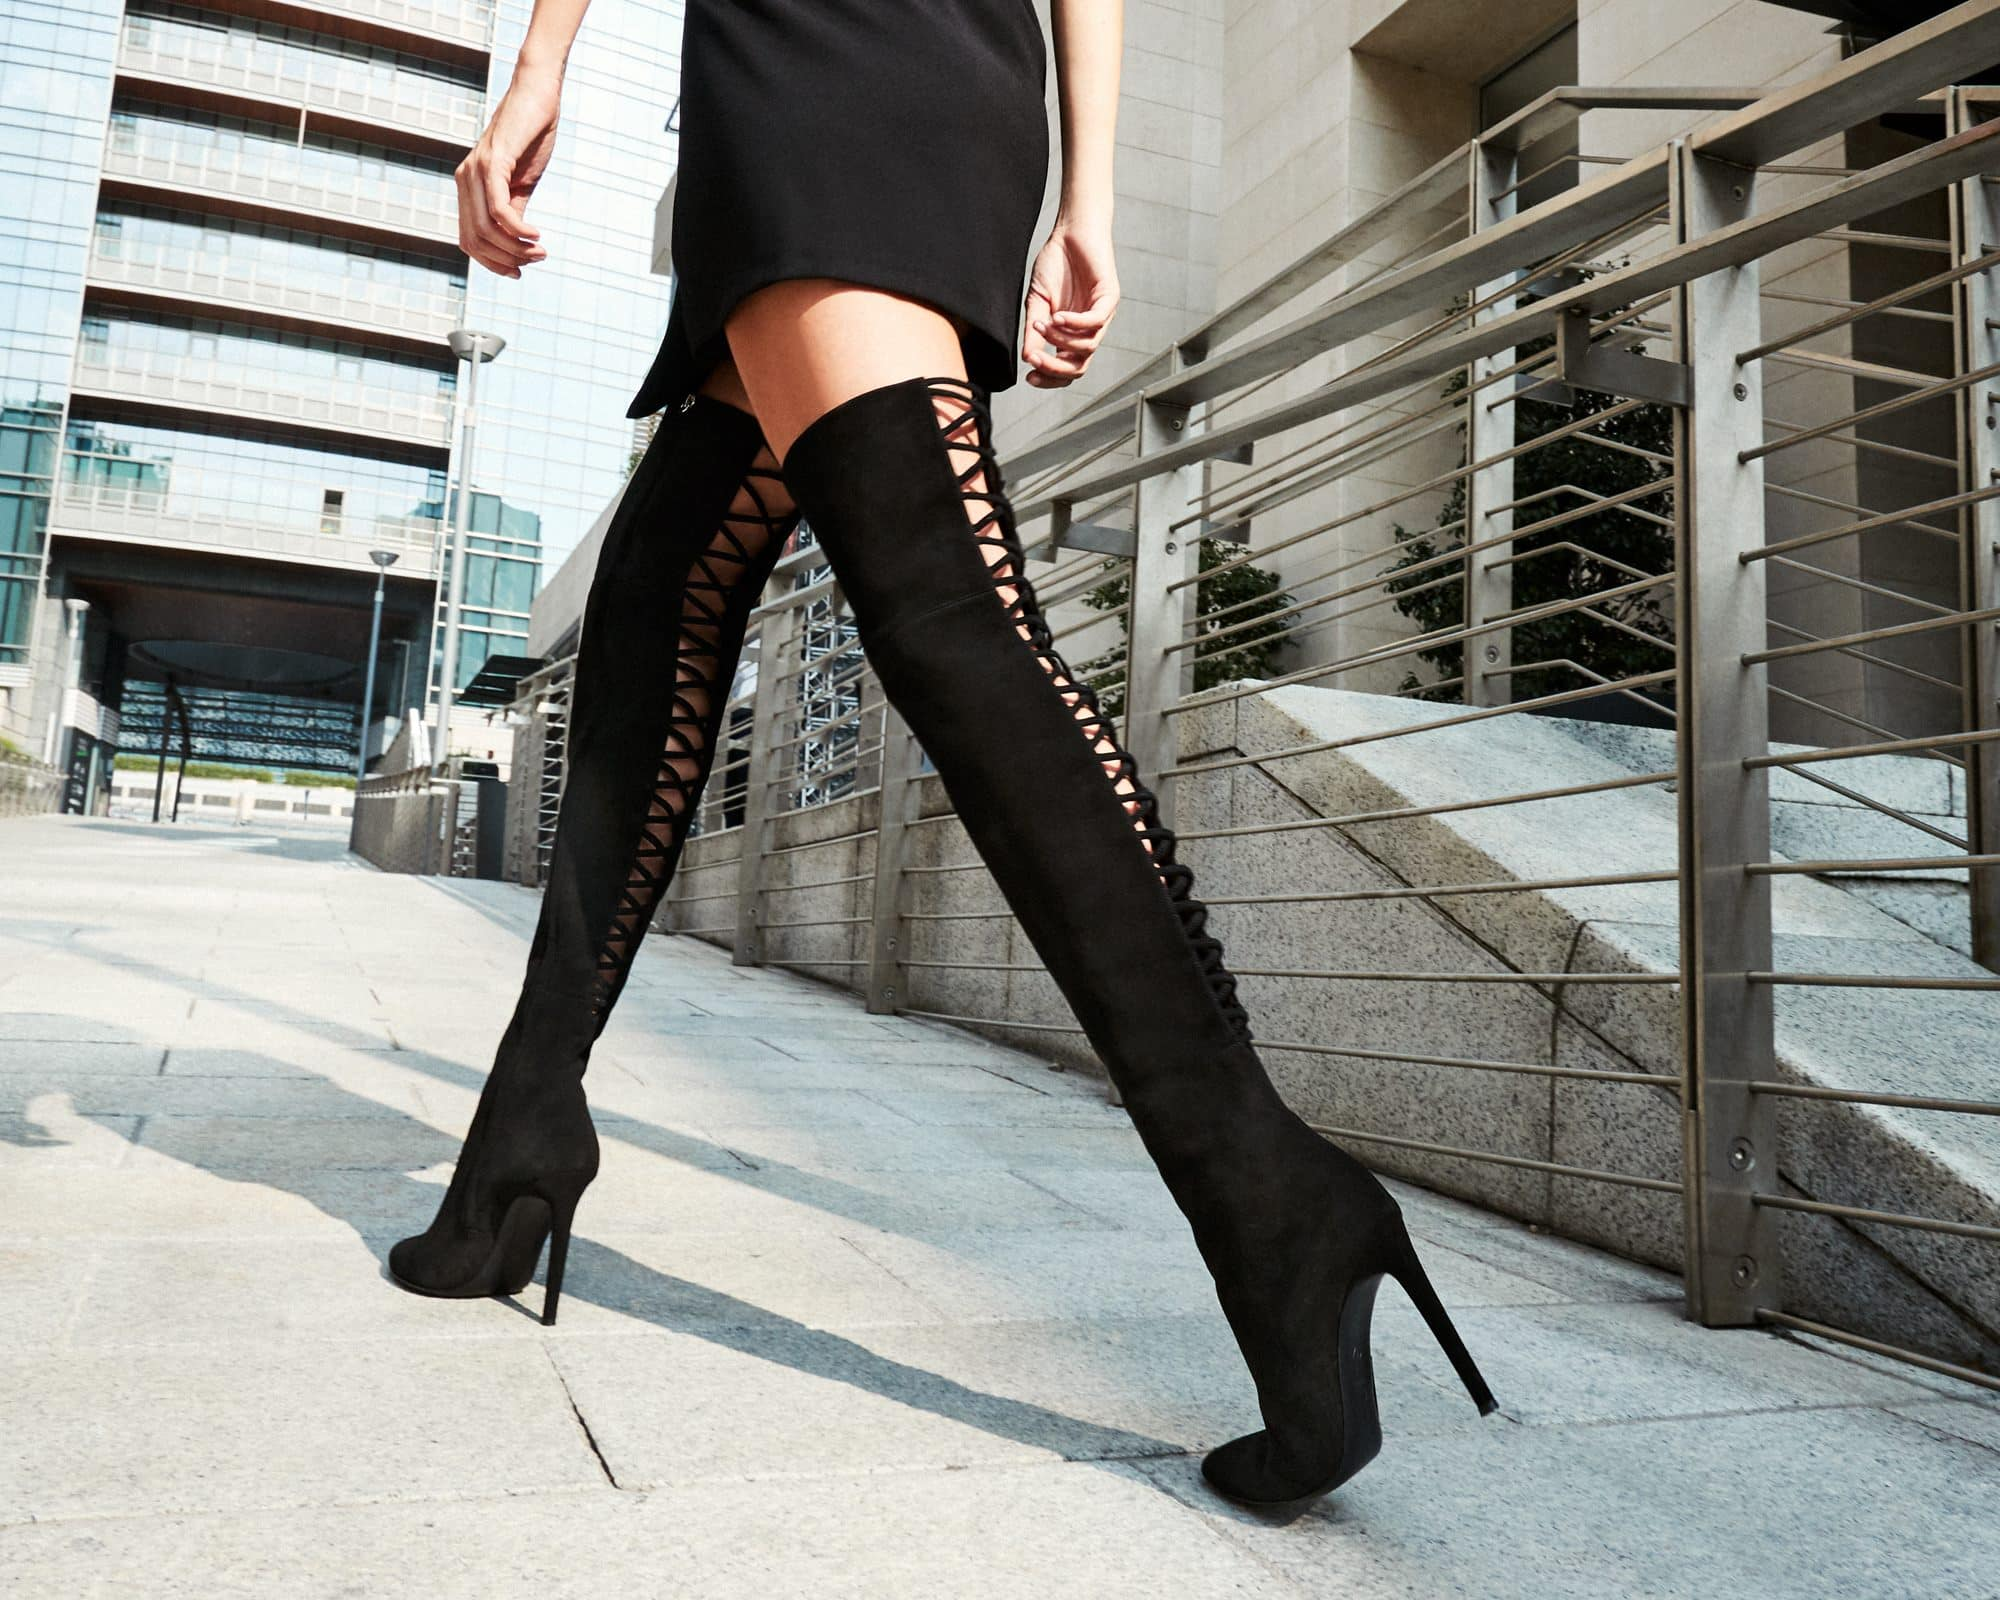 769a2308775 Giuseppe Zanotti s Sleek Over-the-Knee  Alis  Boots With Intricate ...